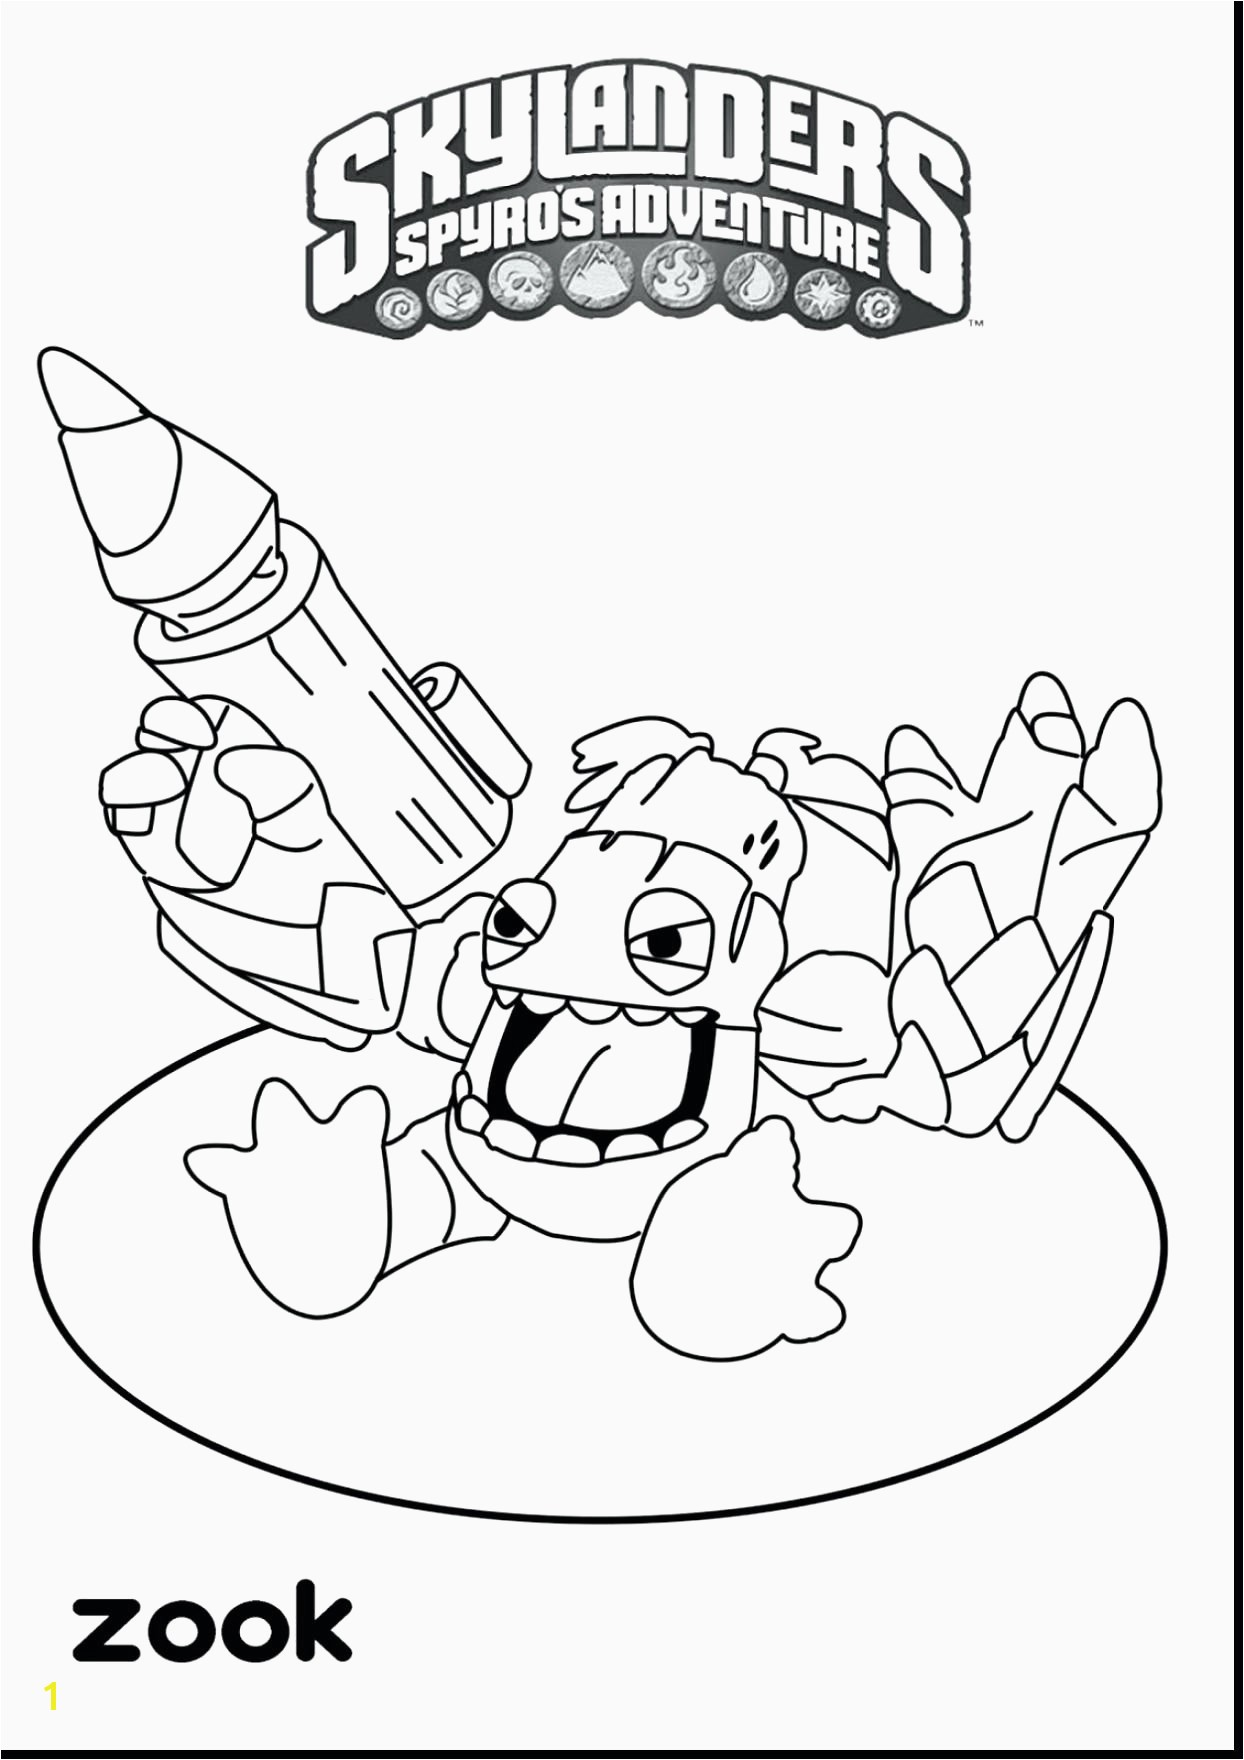 Cool Coloring Page Inspirational Witch Coloring Pages New Crayola